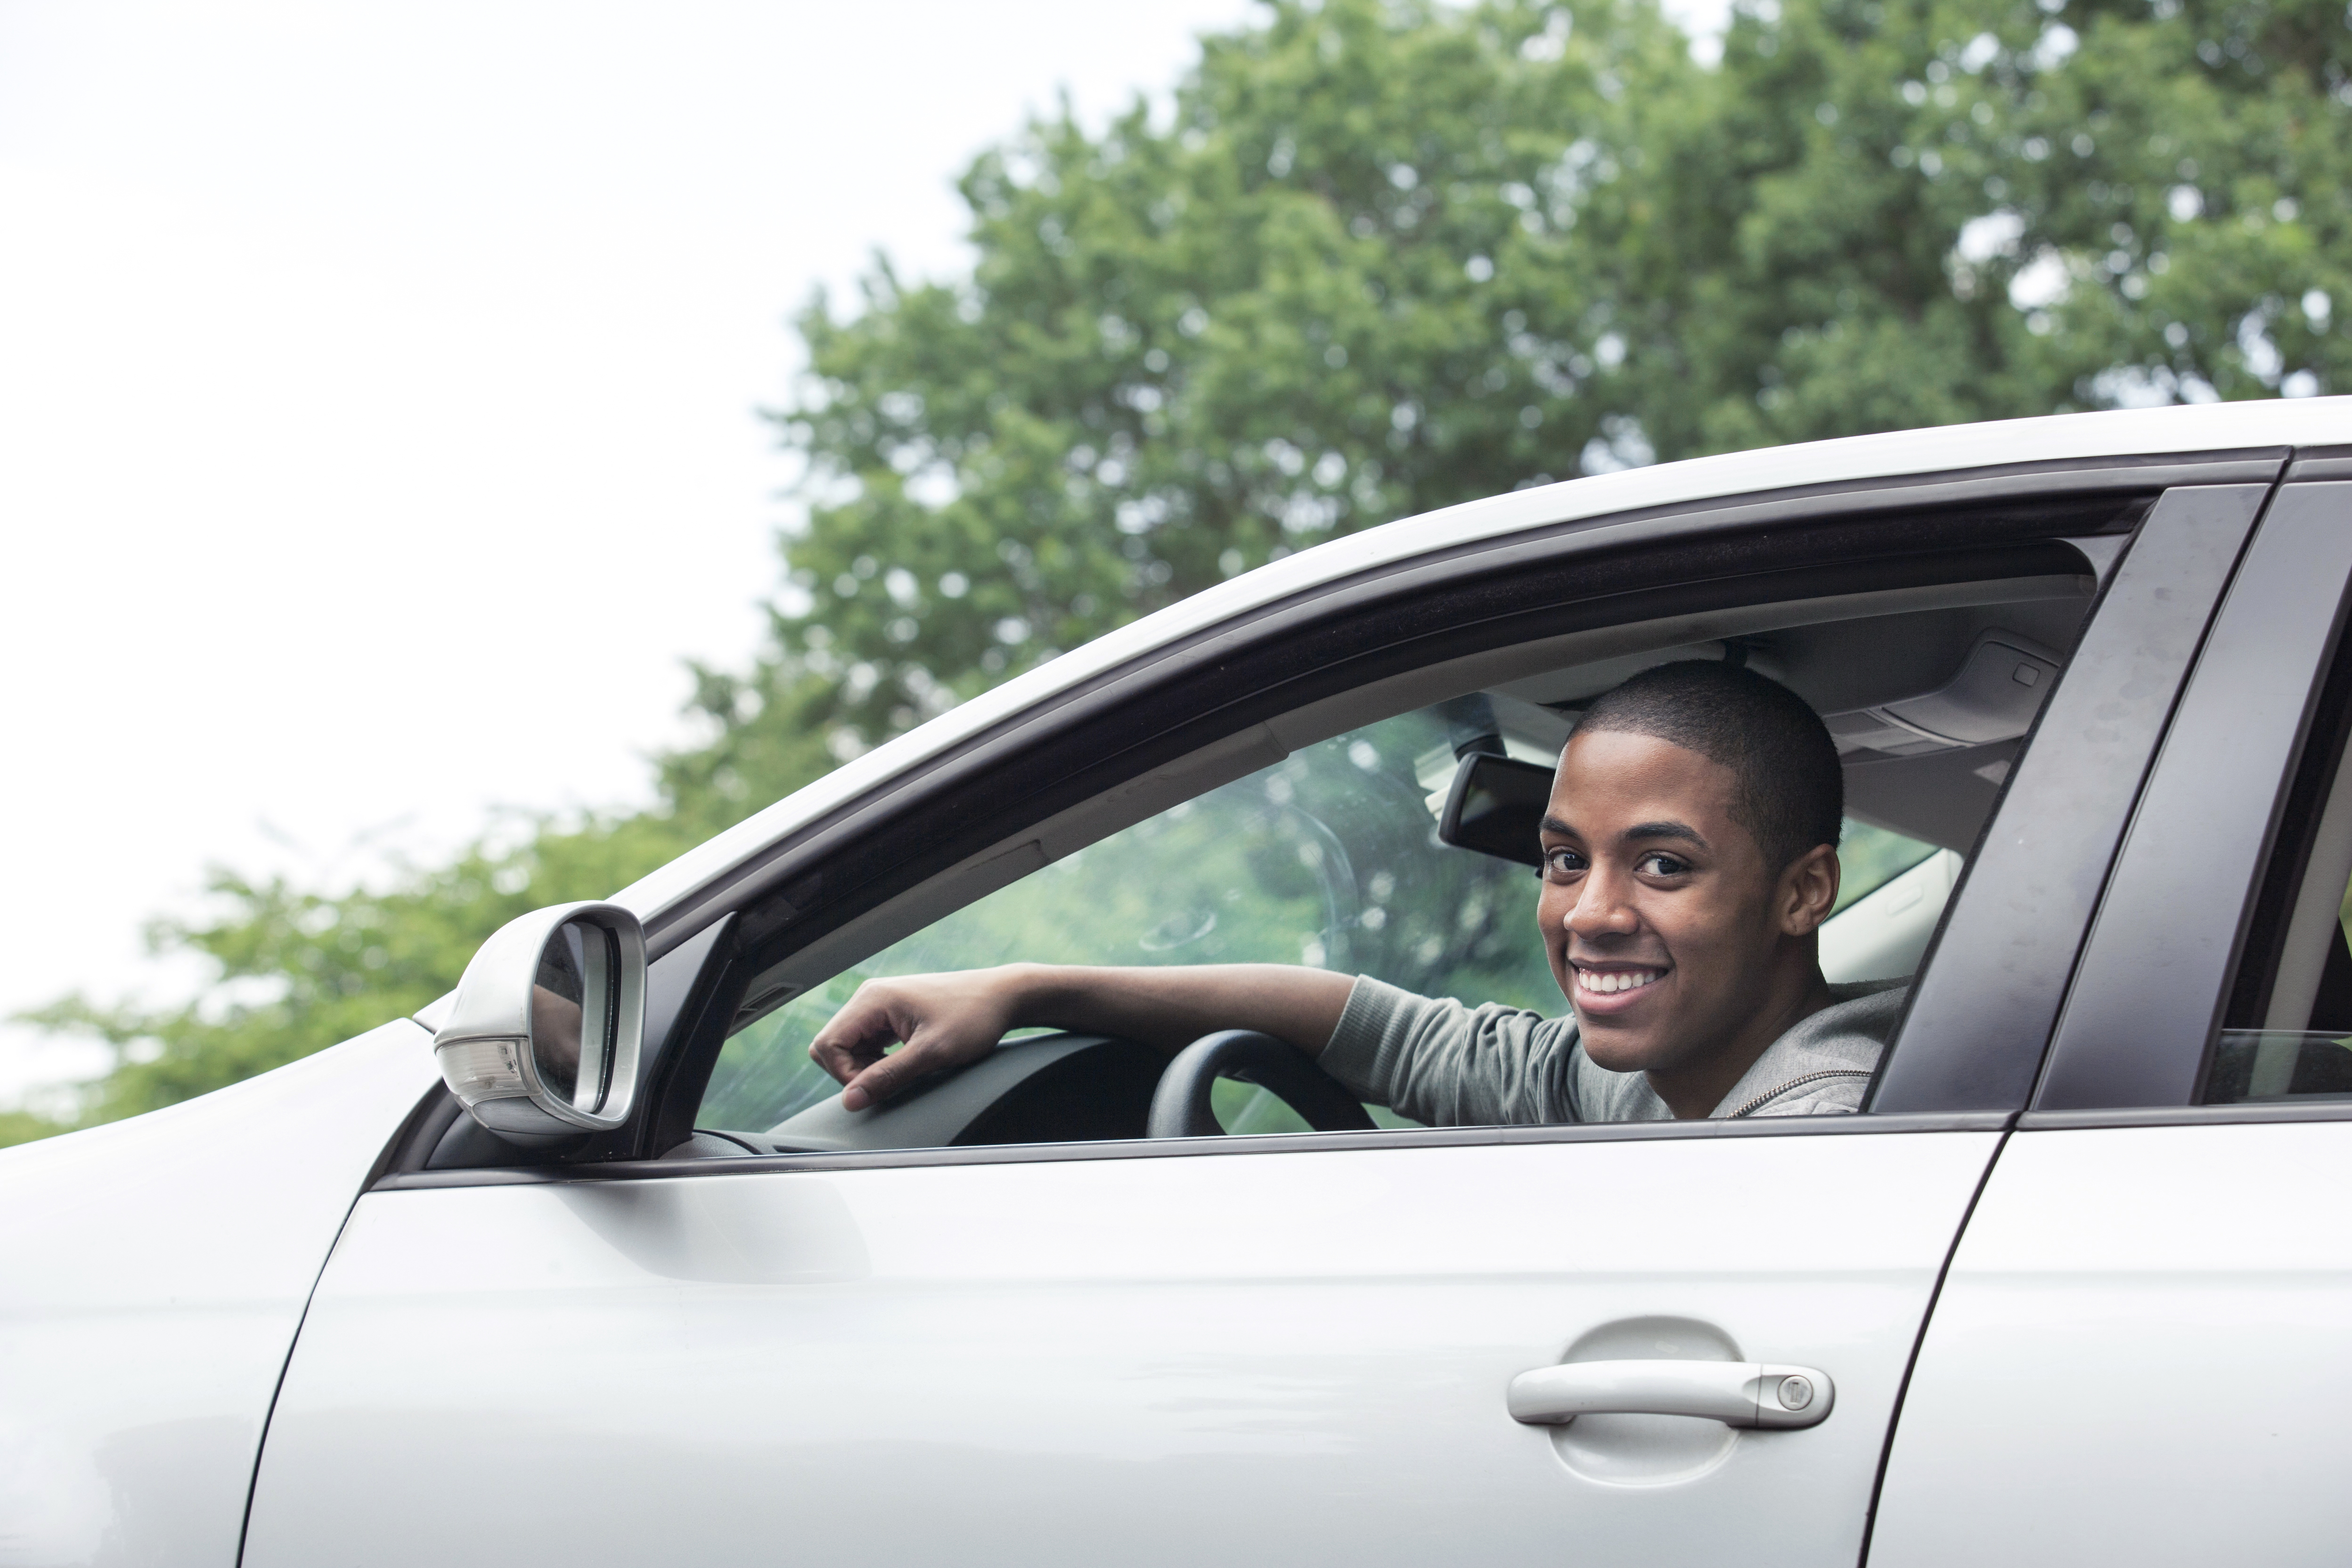 Use a family road trip to get your teen driver familiar with car tech safety features.